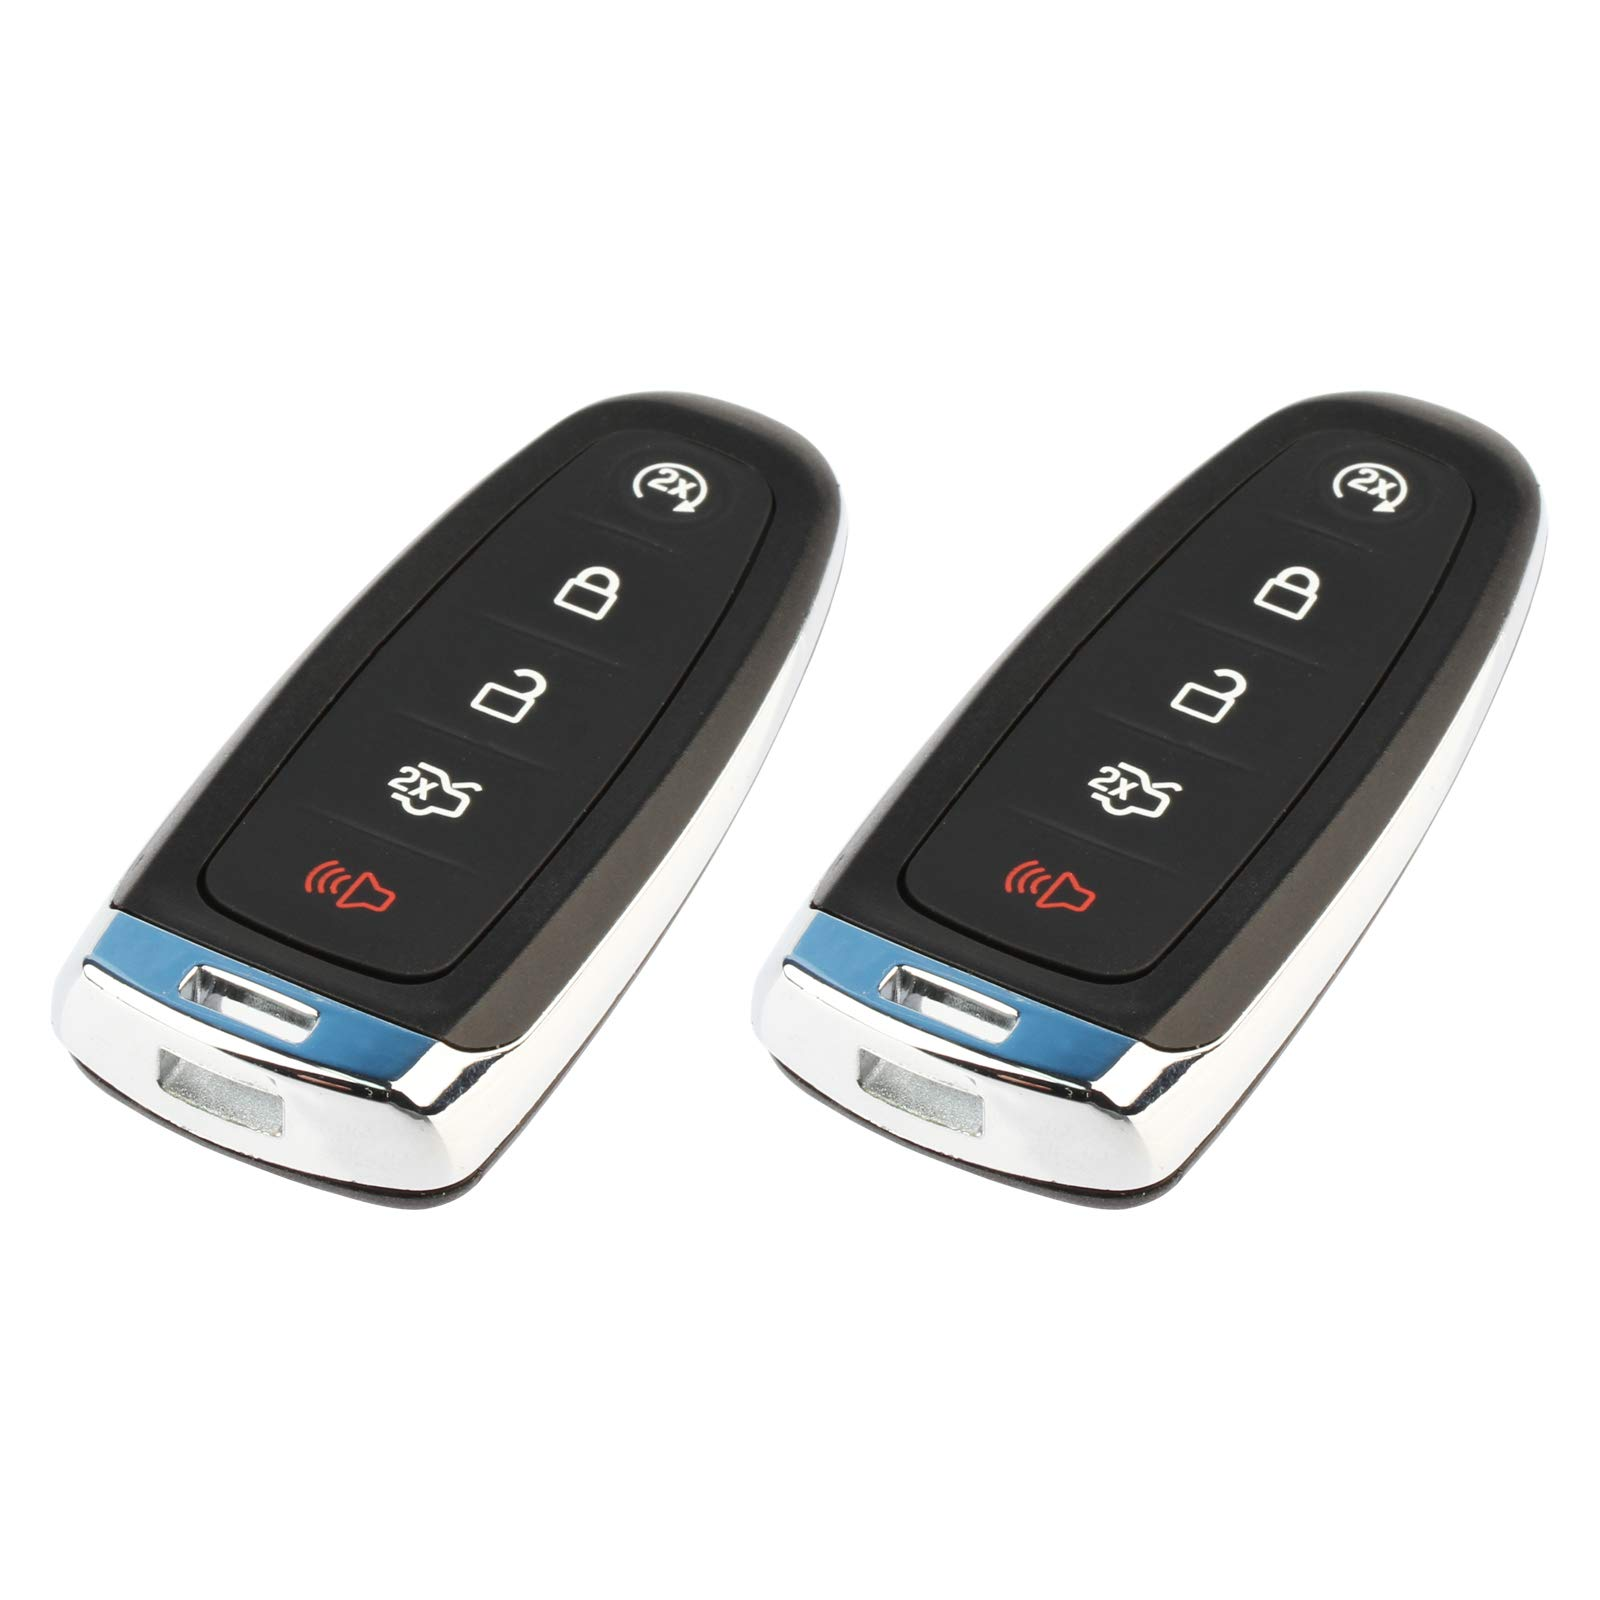 fits 2011-2019 Ford Lincoln Smart Key Fob Keyless Entry Remote (M3N5WY8609), Set of 2 by USARemote